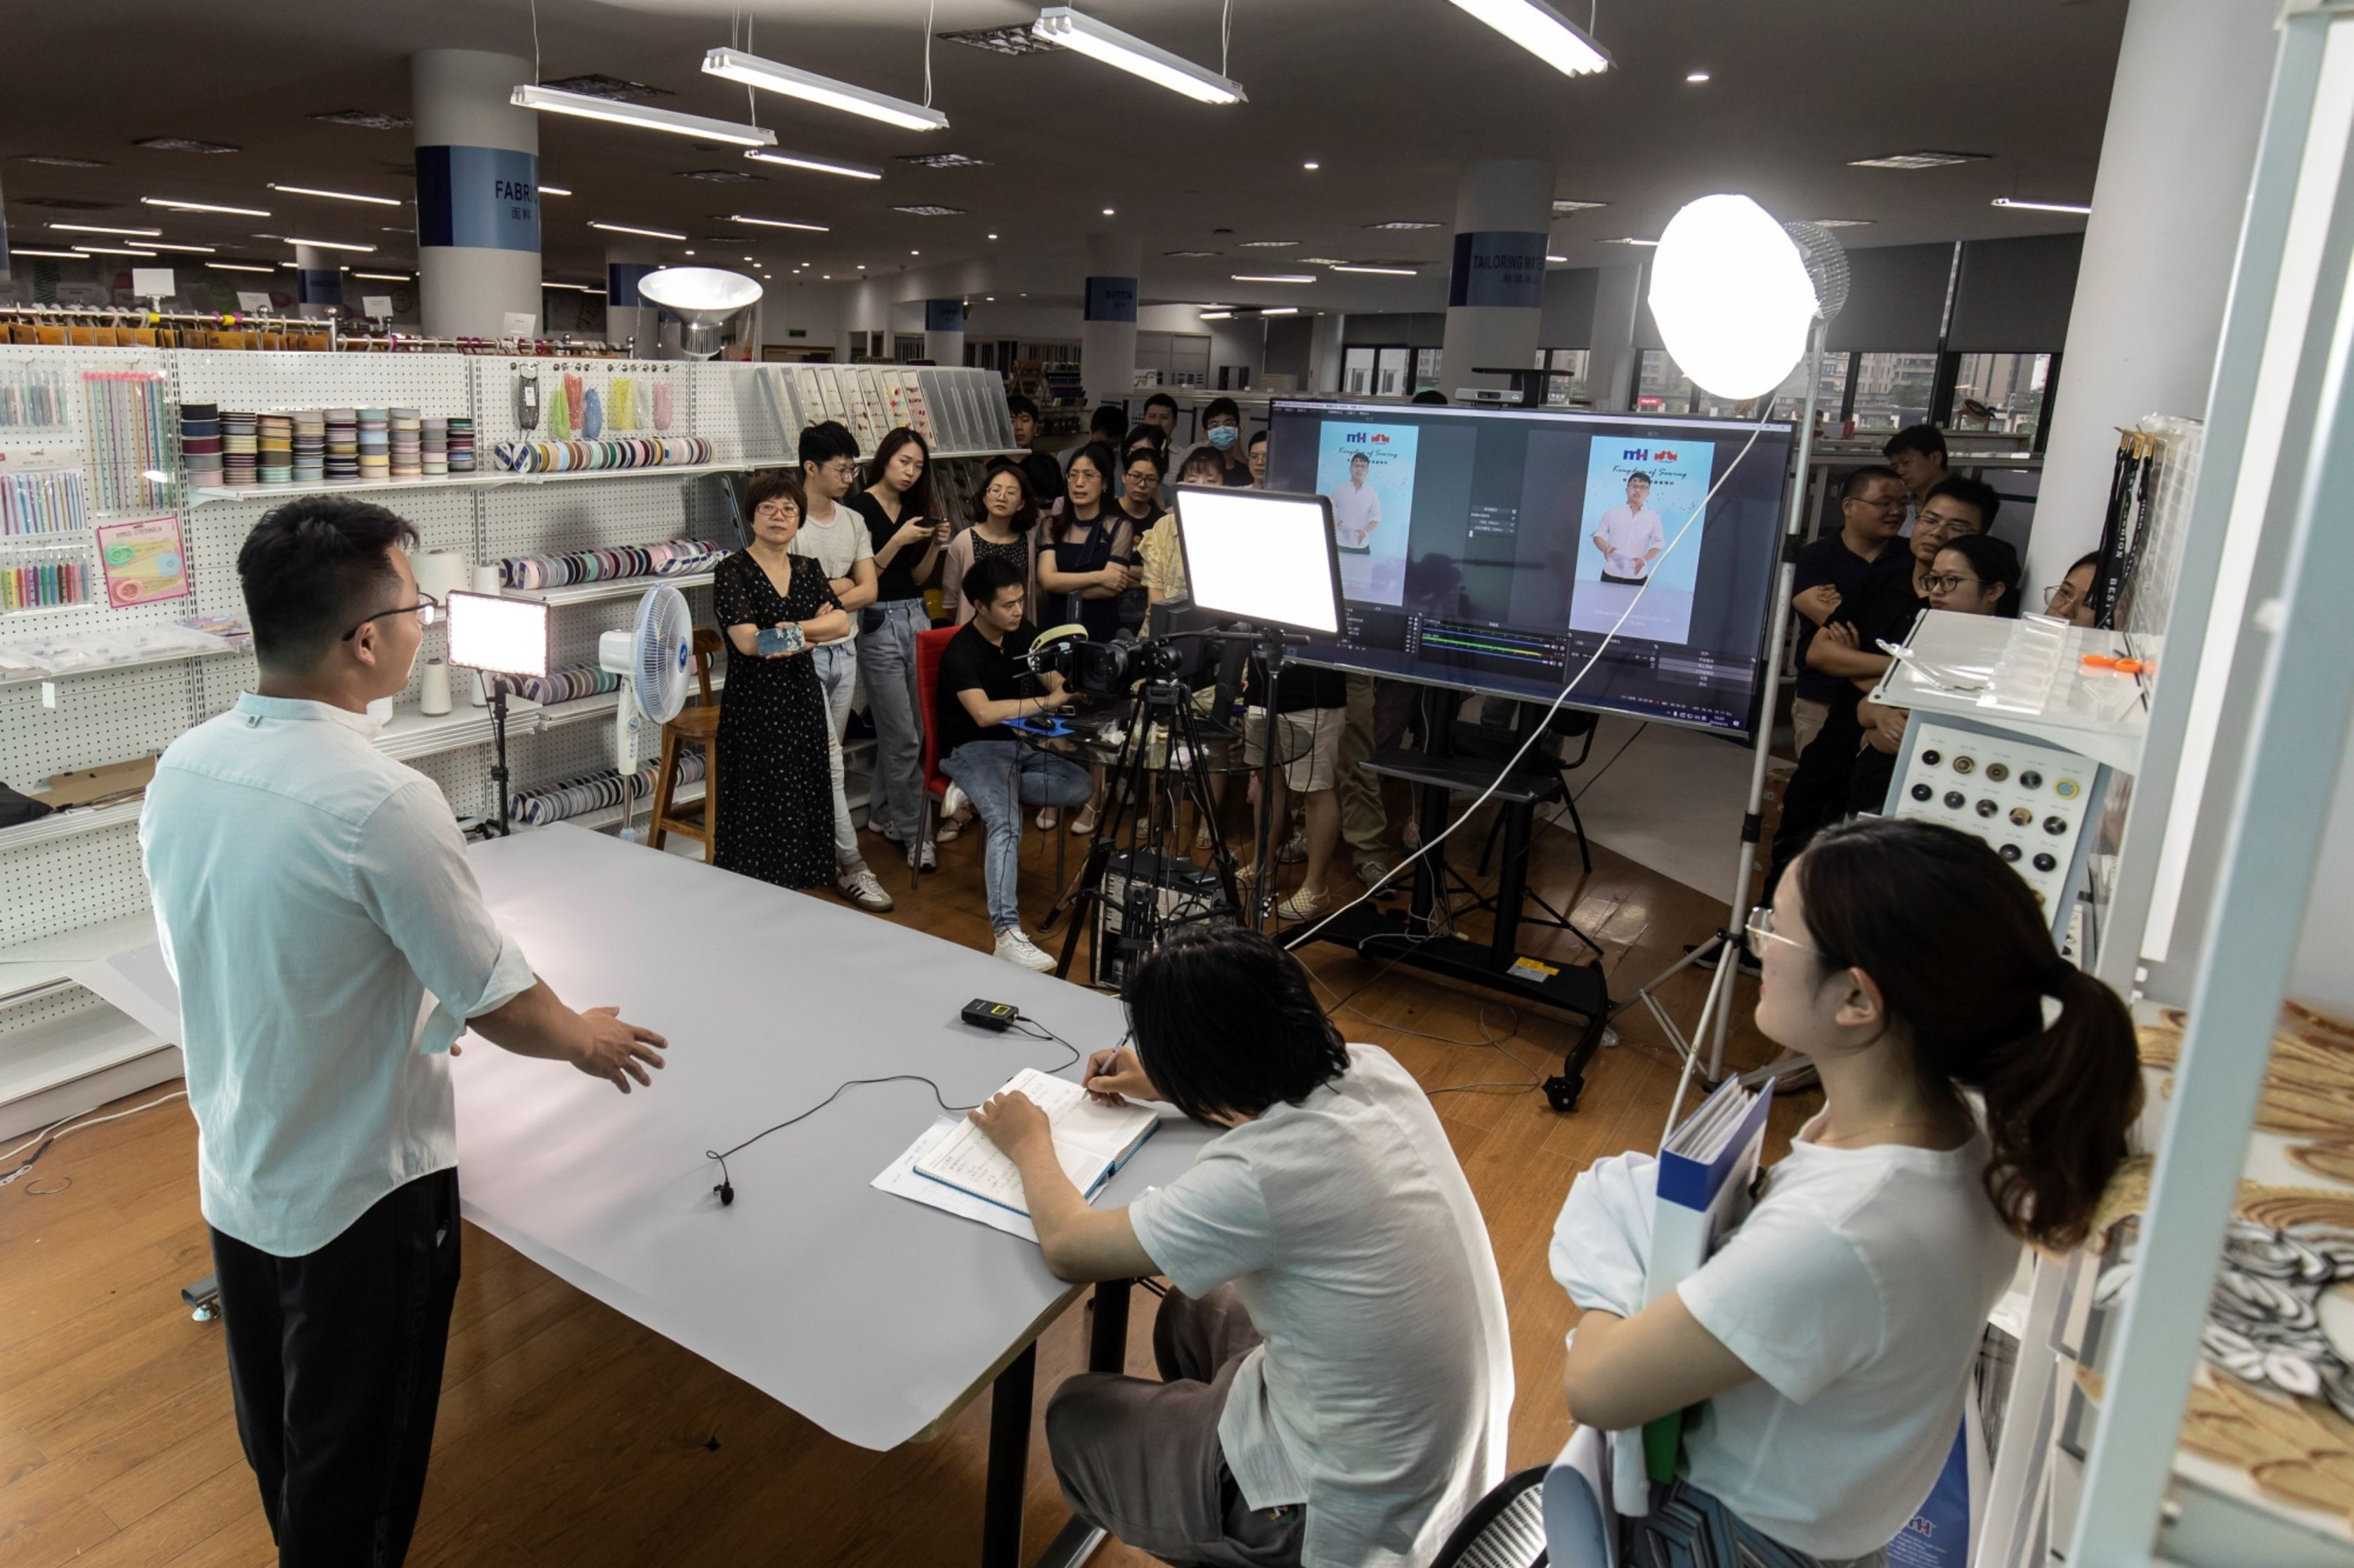 Employees rehearse hosting a livestream session for the upcoming Canton Fair inside a showroom at Ningbo MH Industry Co. in Ningbo. Photo: Bloomerberg